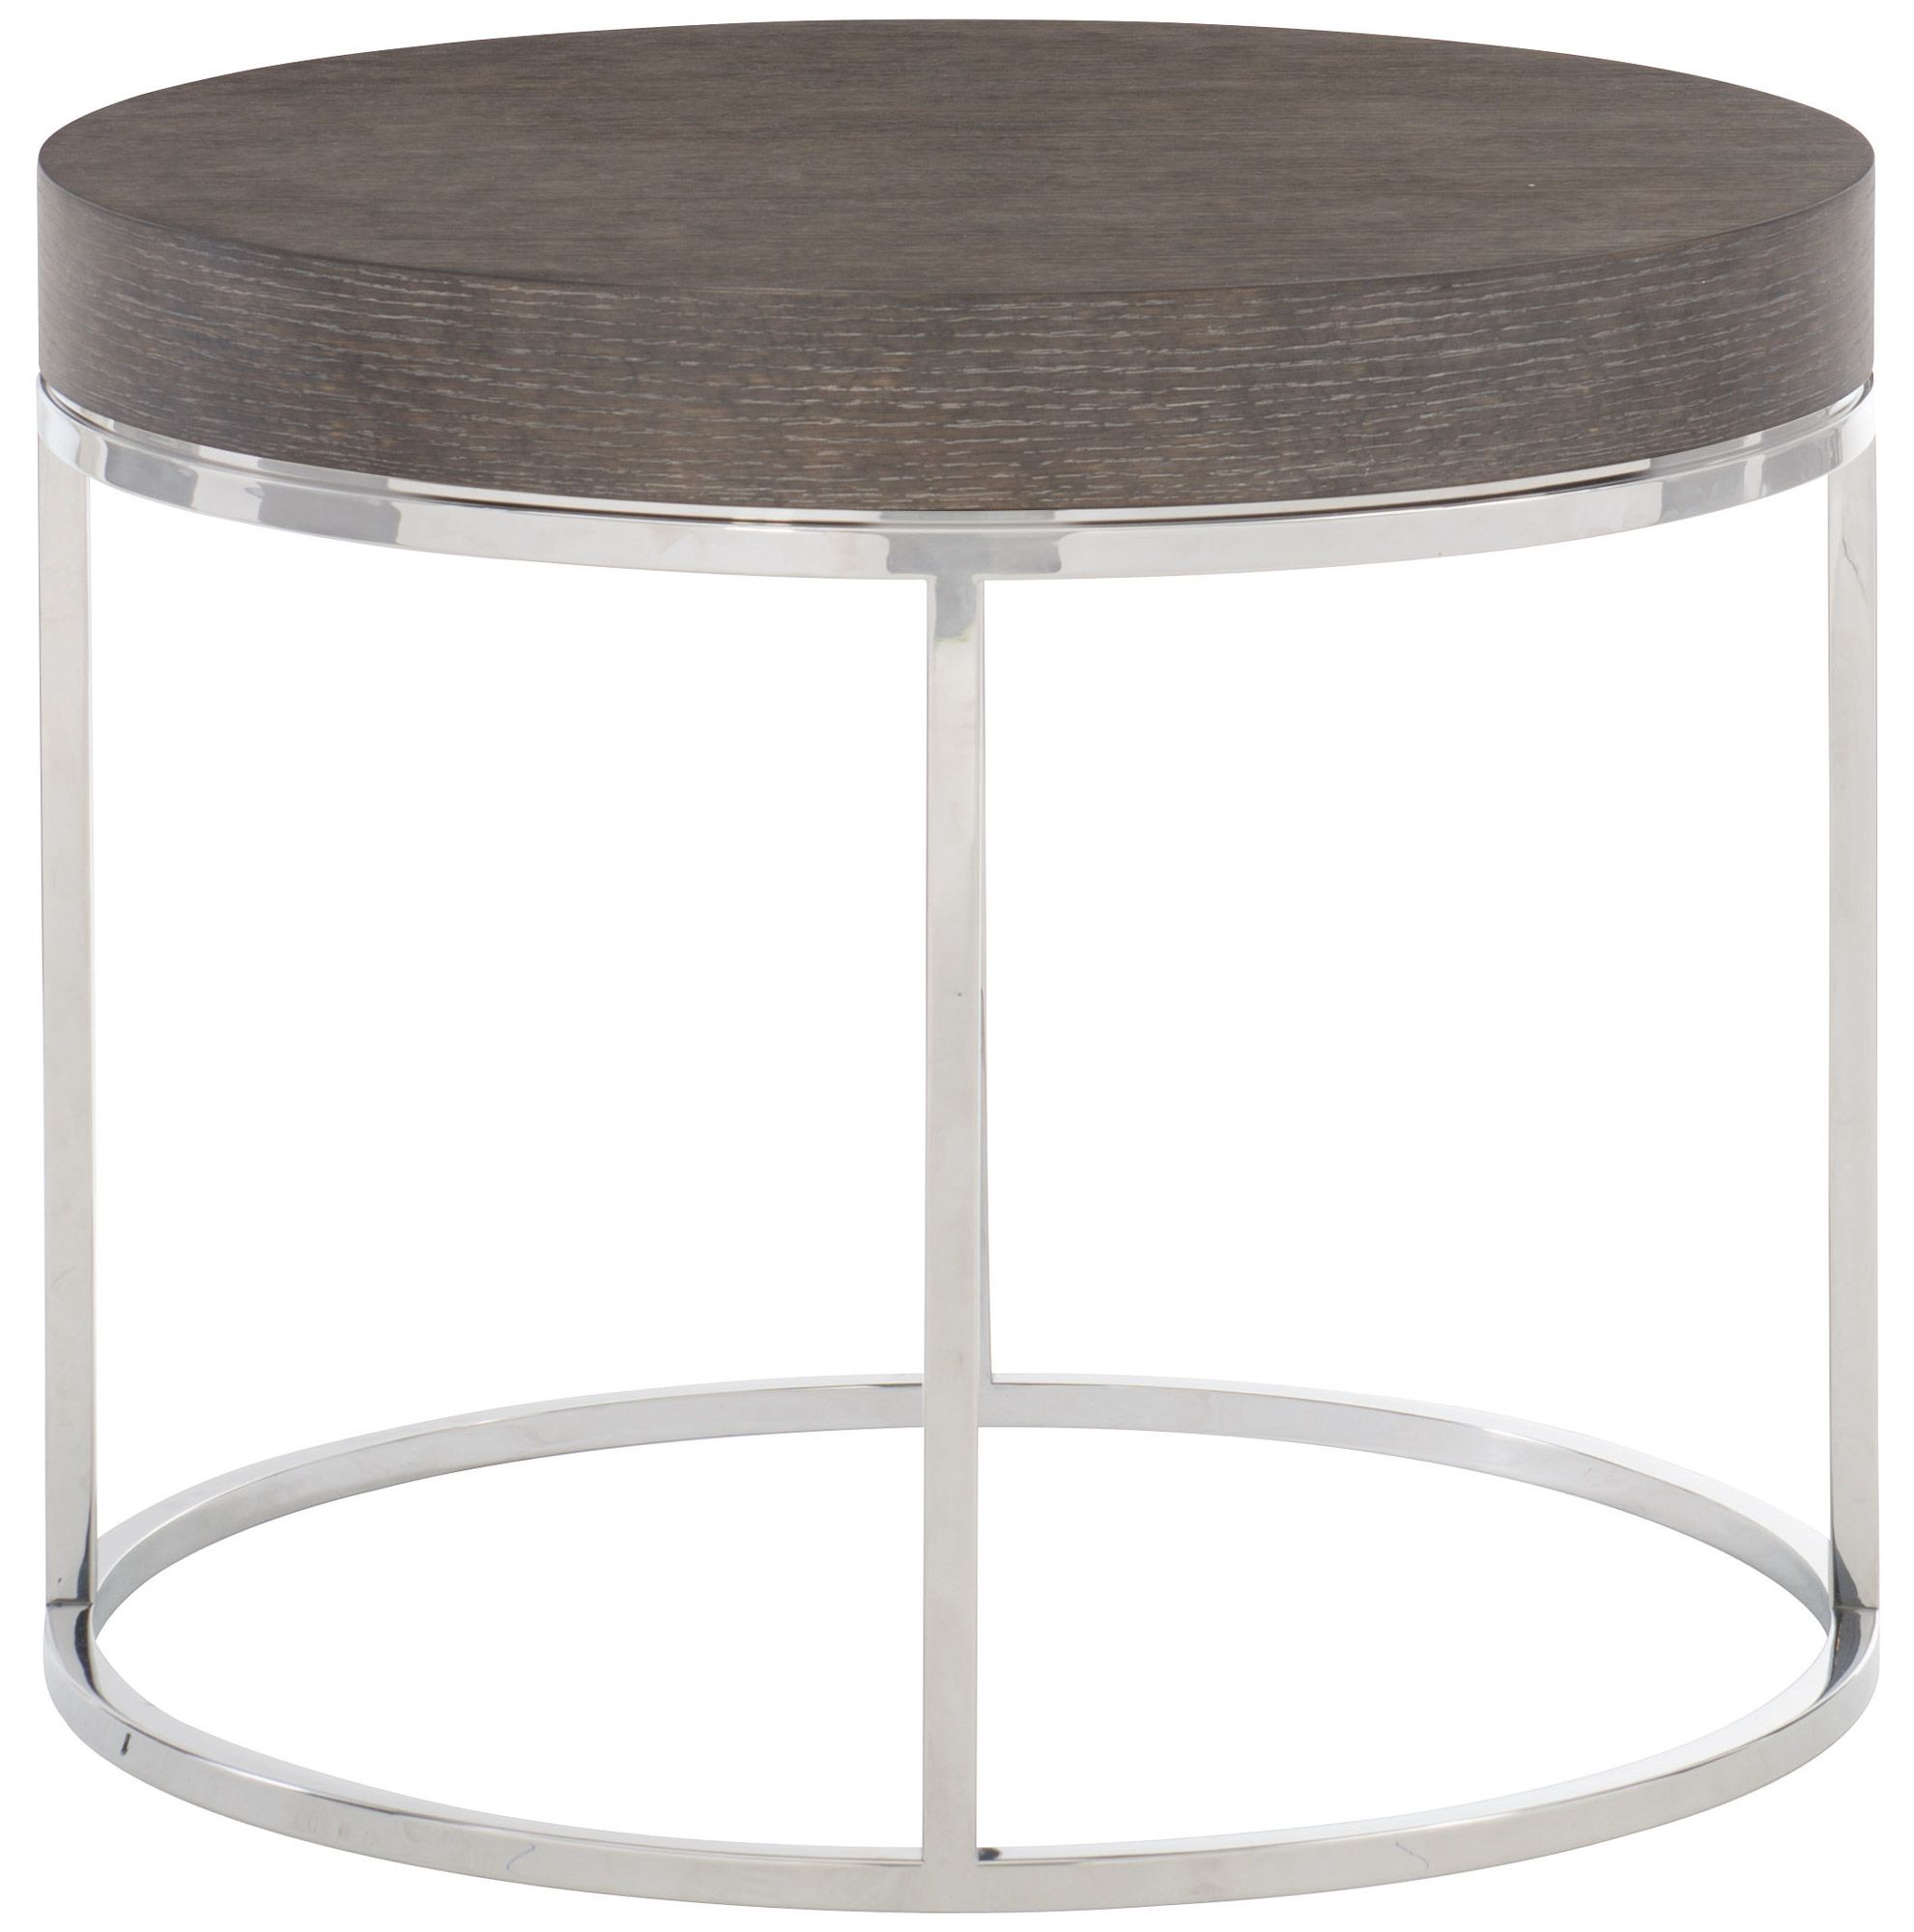 1981x2000 Round End Table Bernhardt Family Room End Tables, Table